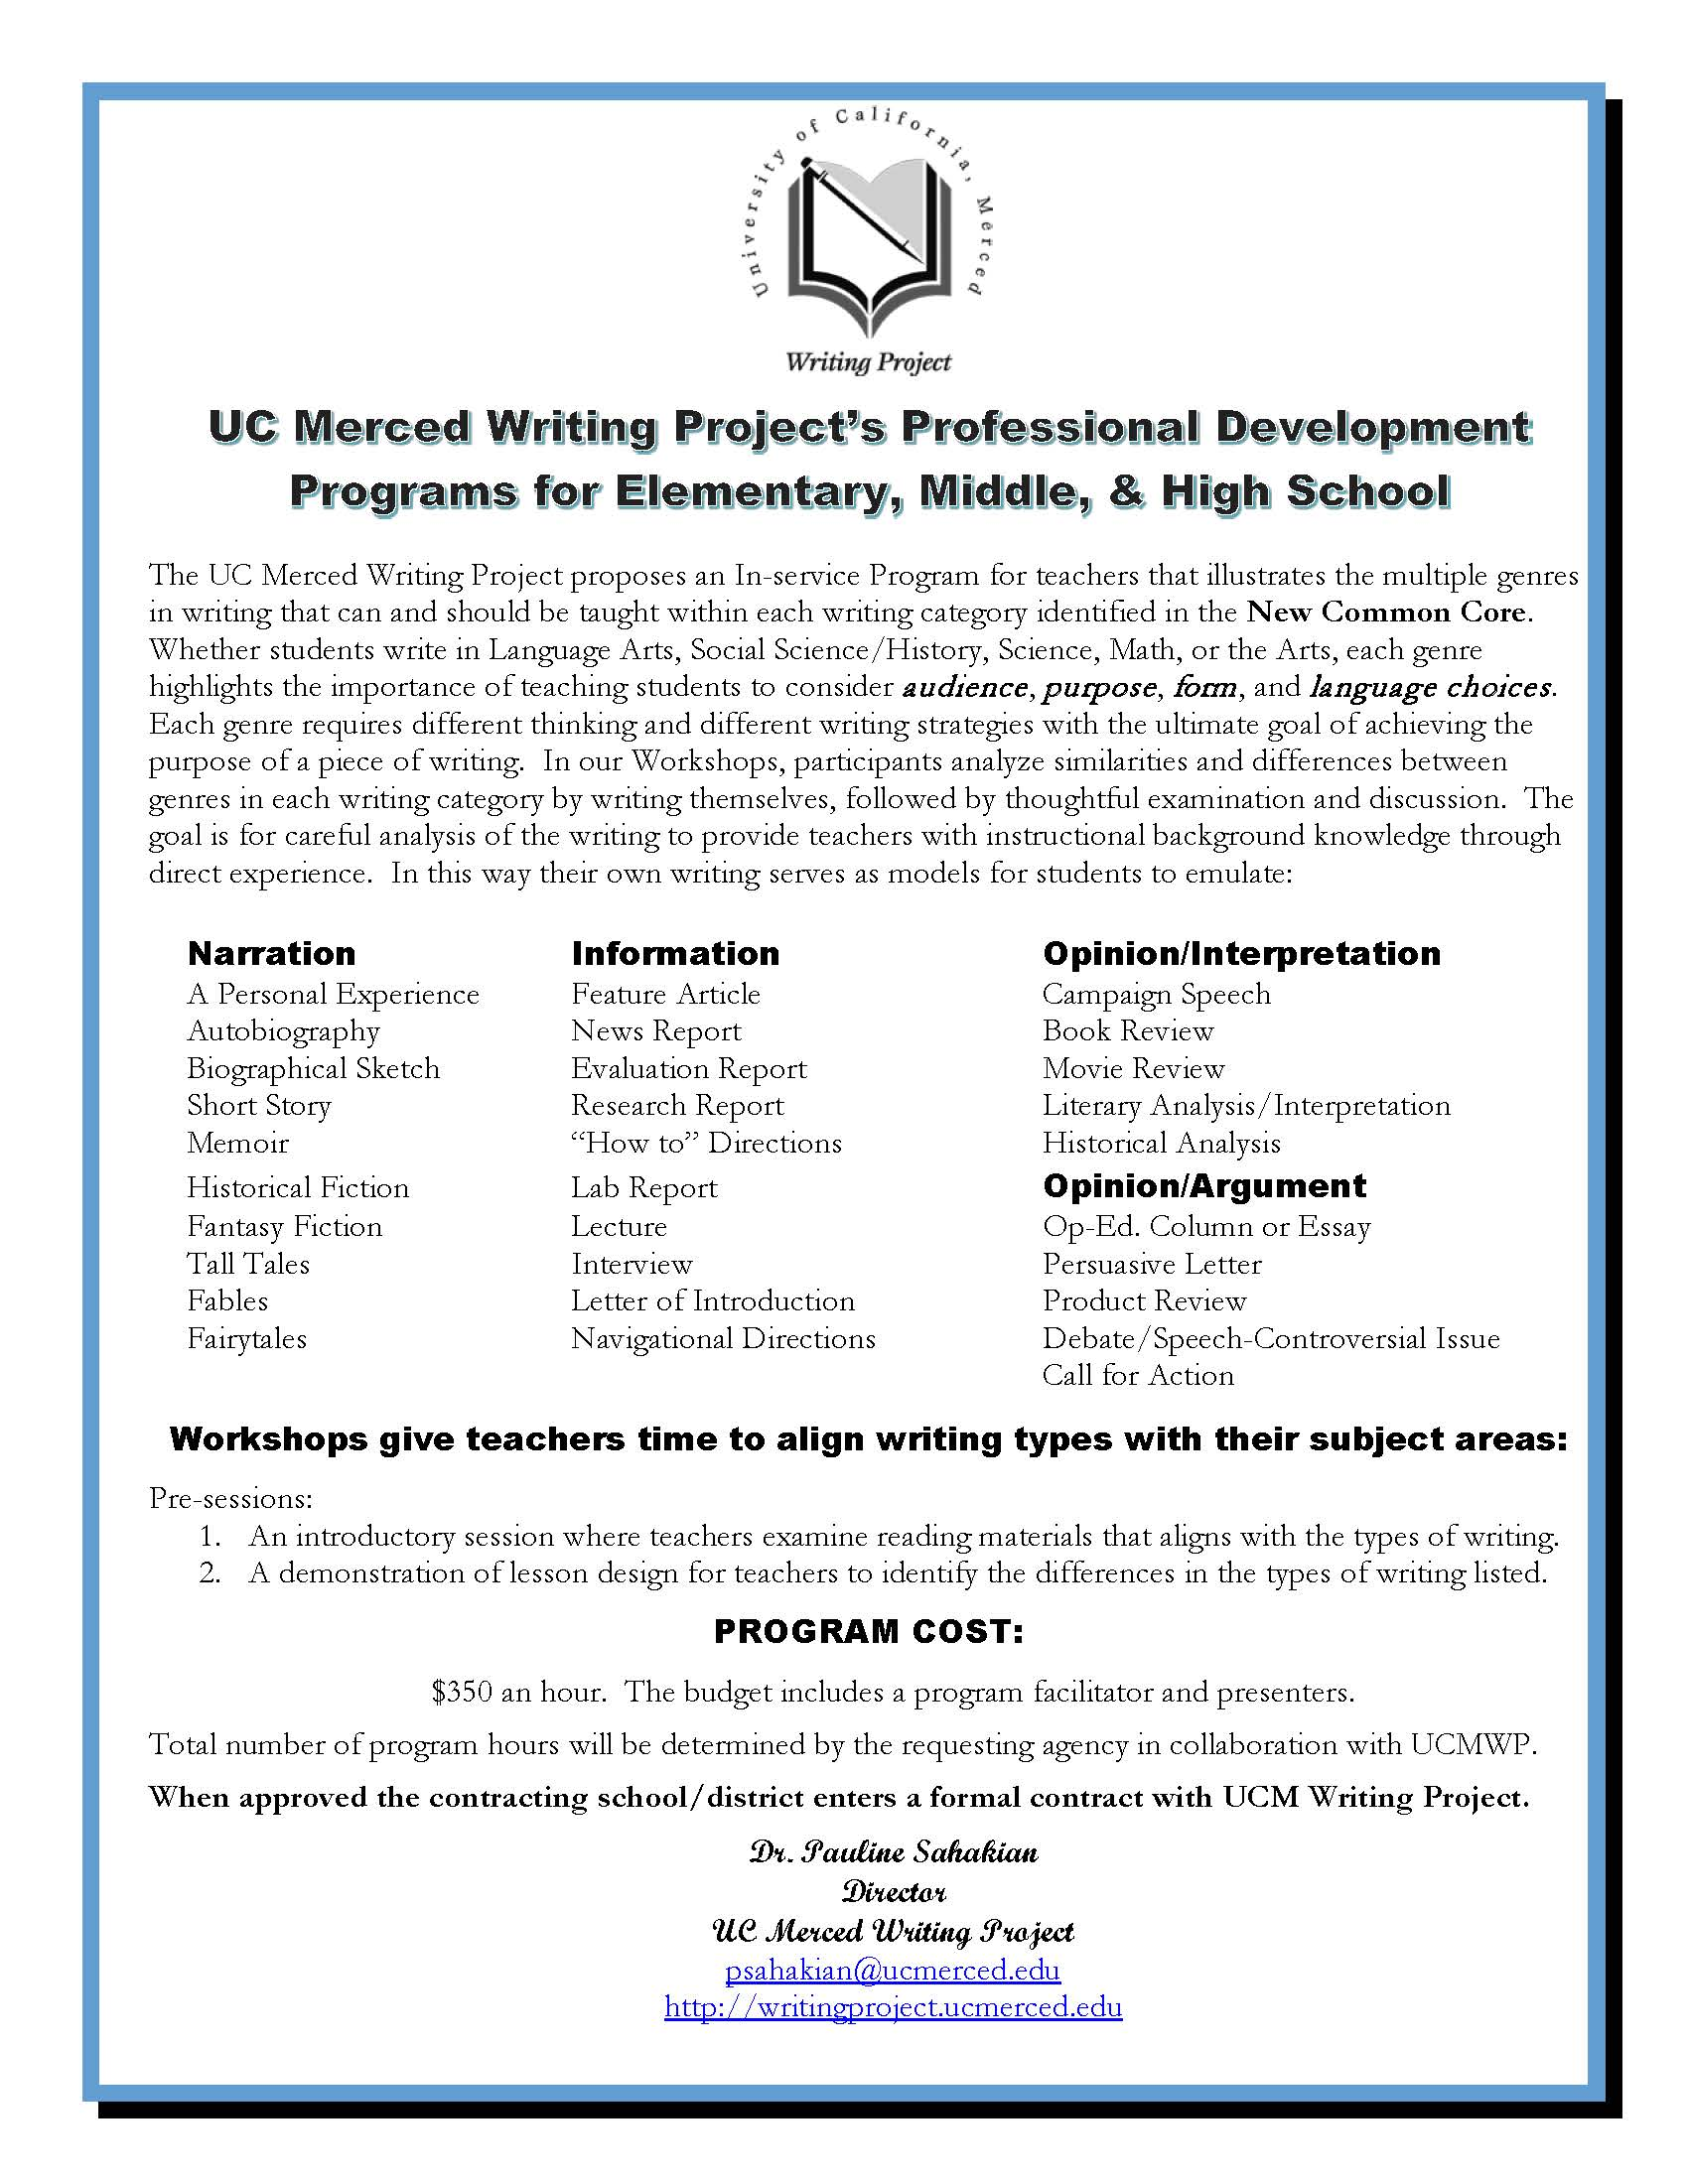 UC Merced Writing Project Presents Professional Development Workshops on Common Core